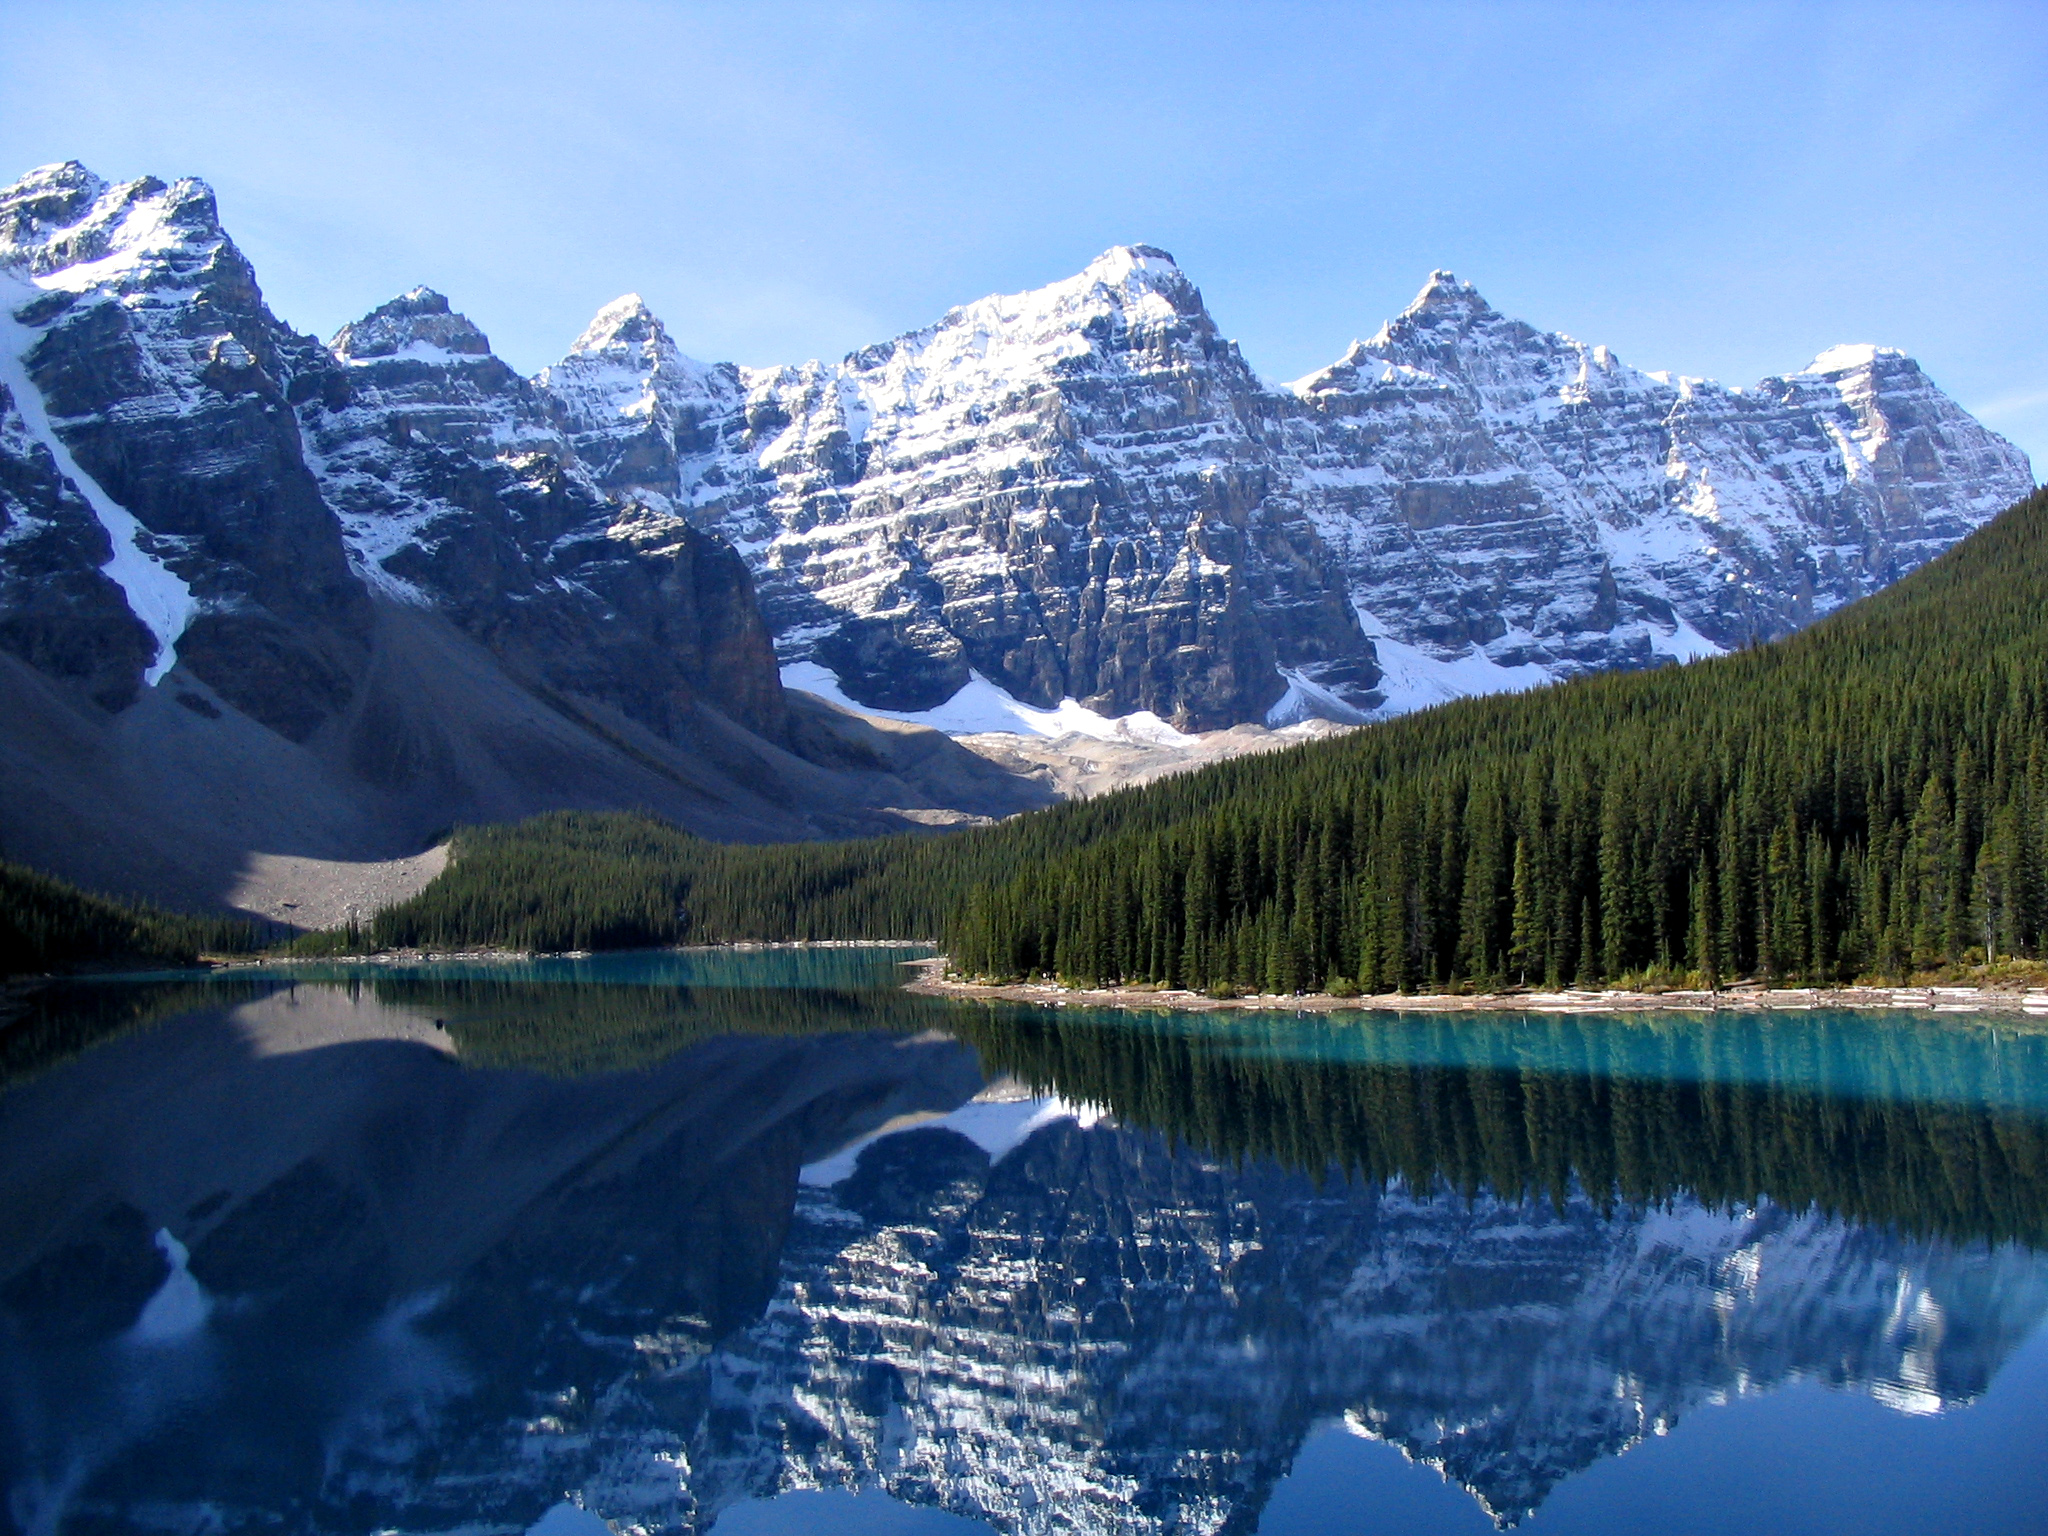 Beholding life-changing vistas like Moraine Lake in the Canadian Rockies is just one of the top reasons to visit Canada!